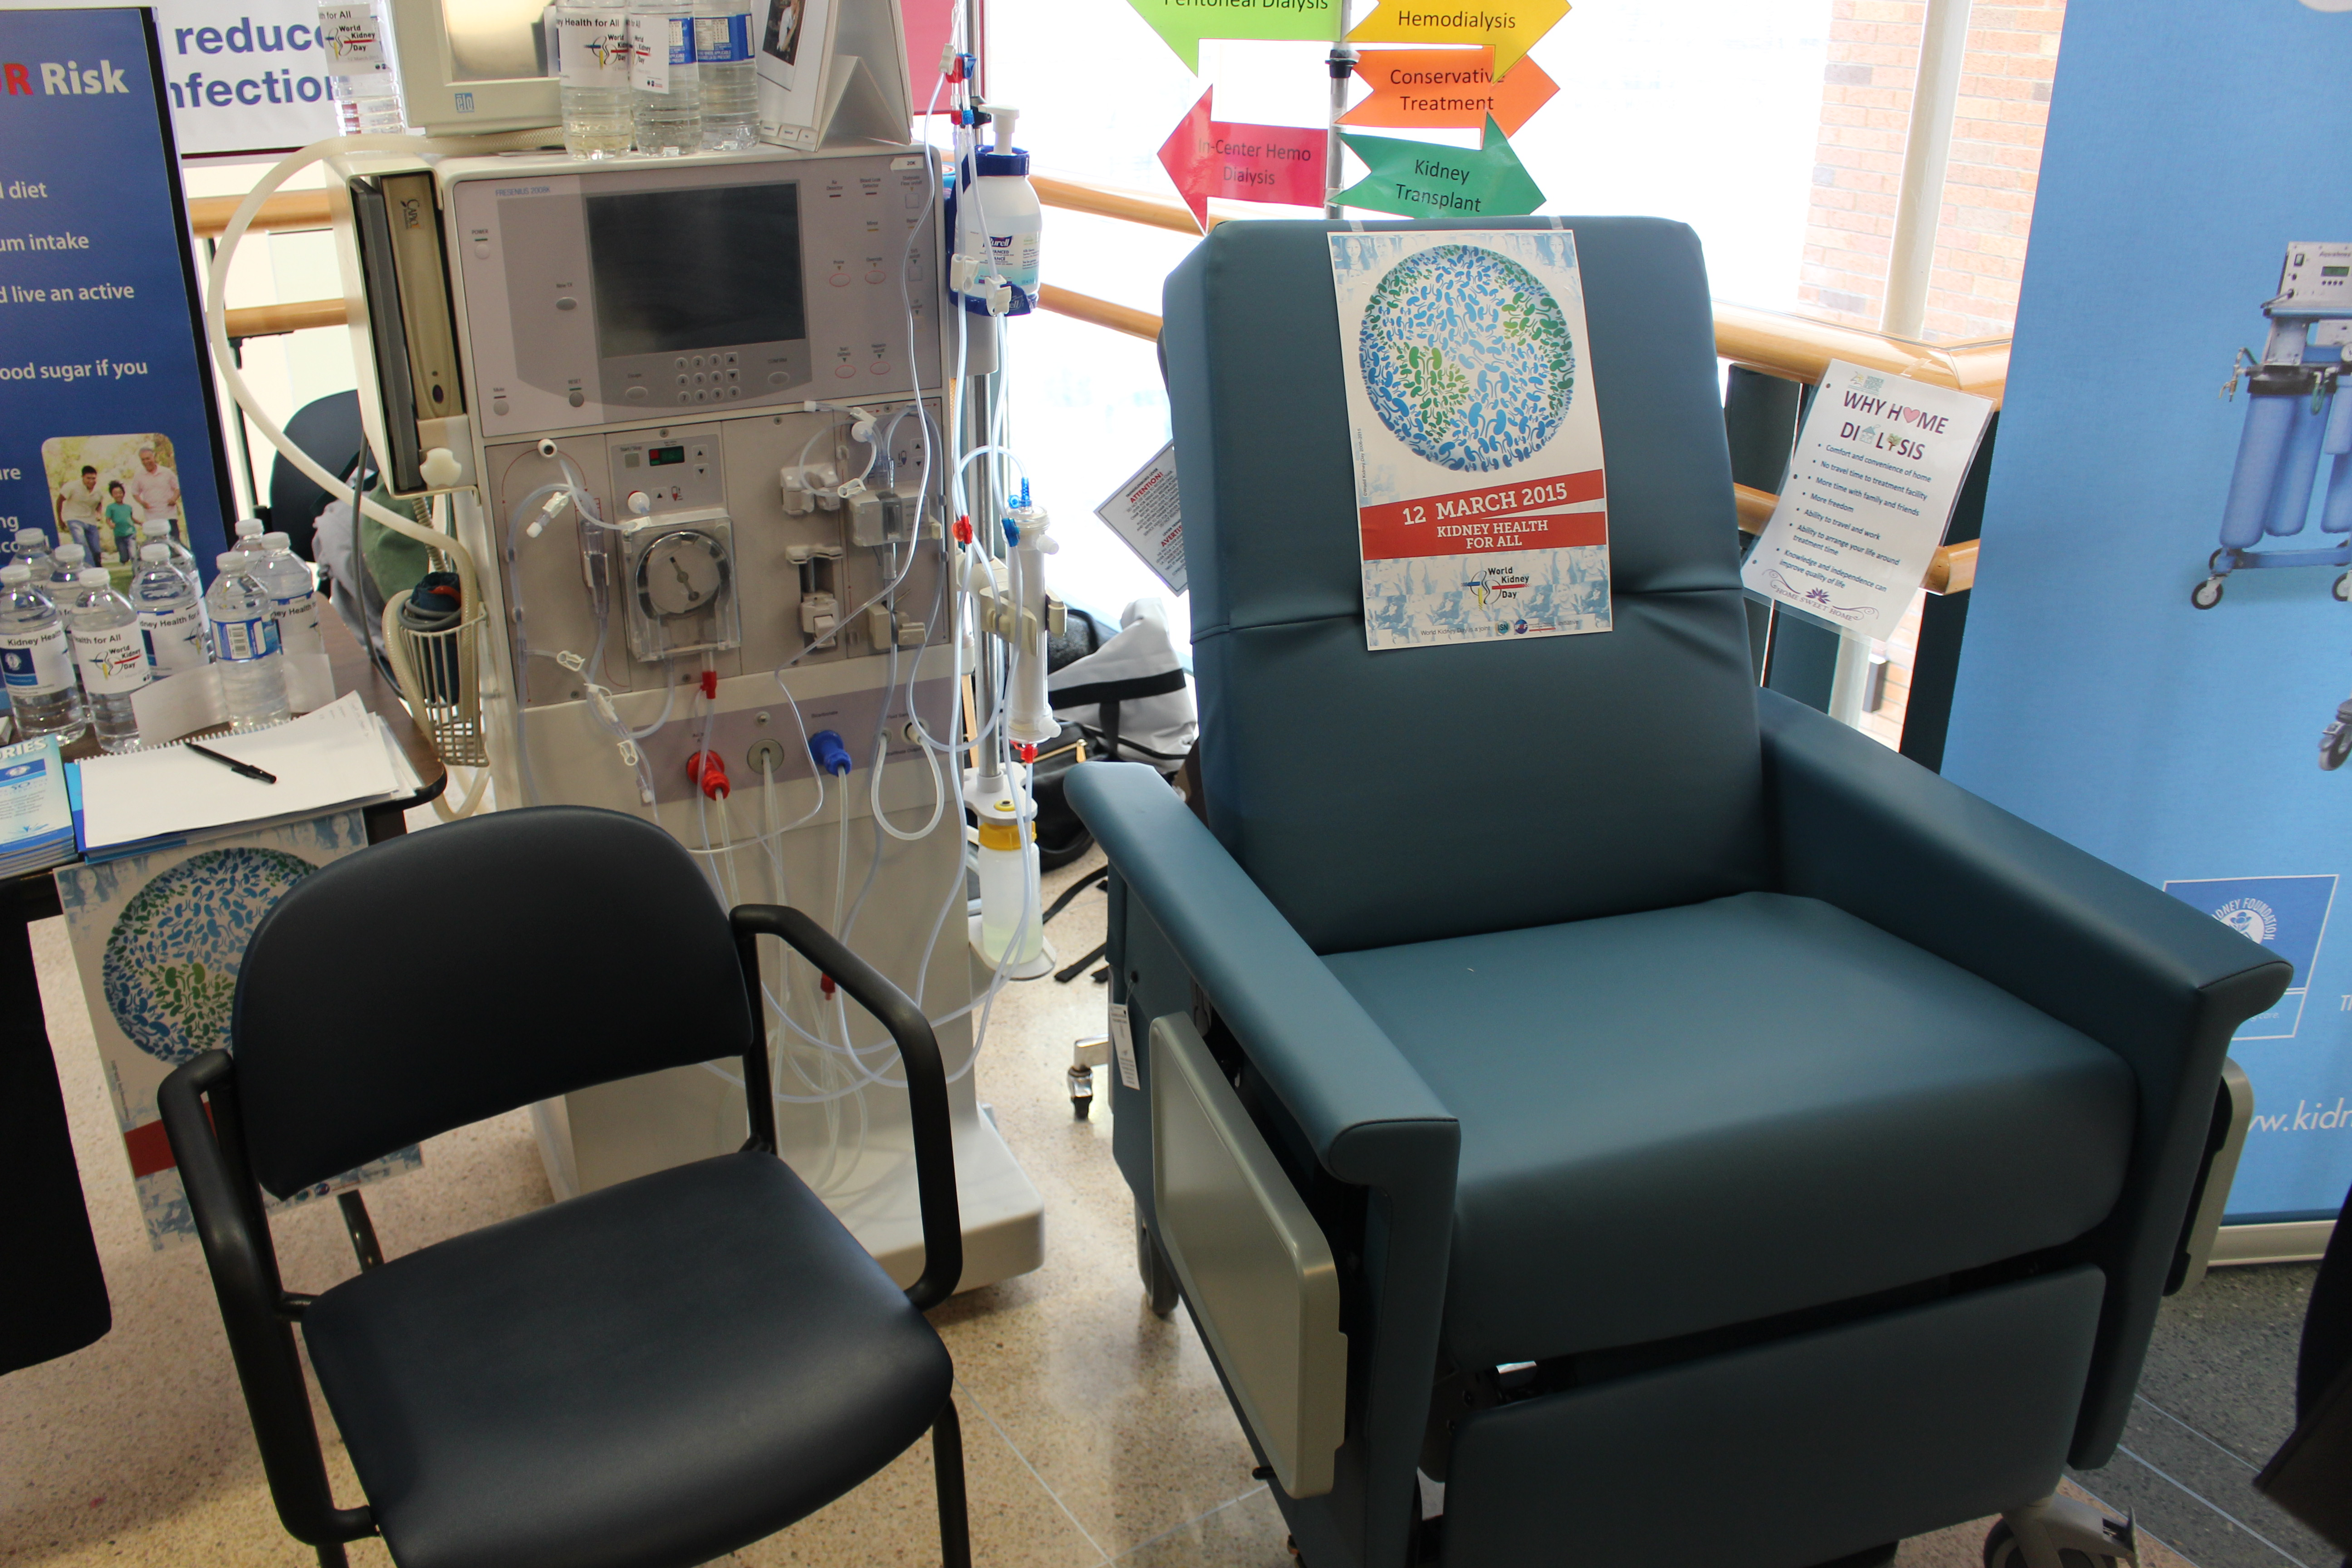 A dialysis chair and machine set up at Windsor Regional Hospital's Ouellette Campus, March 12, 2015. (Photo by Mike Vlasveld)